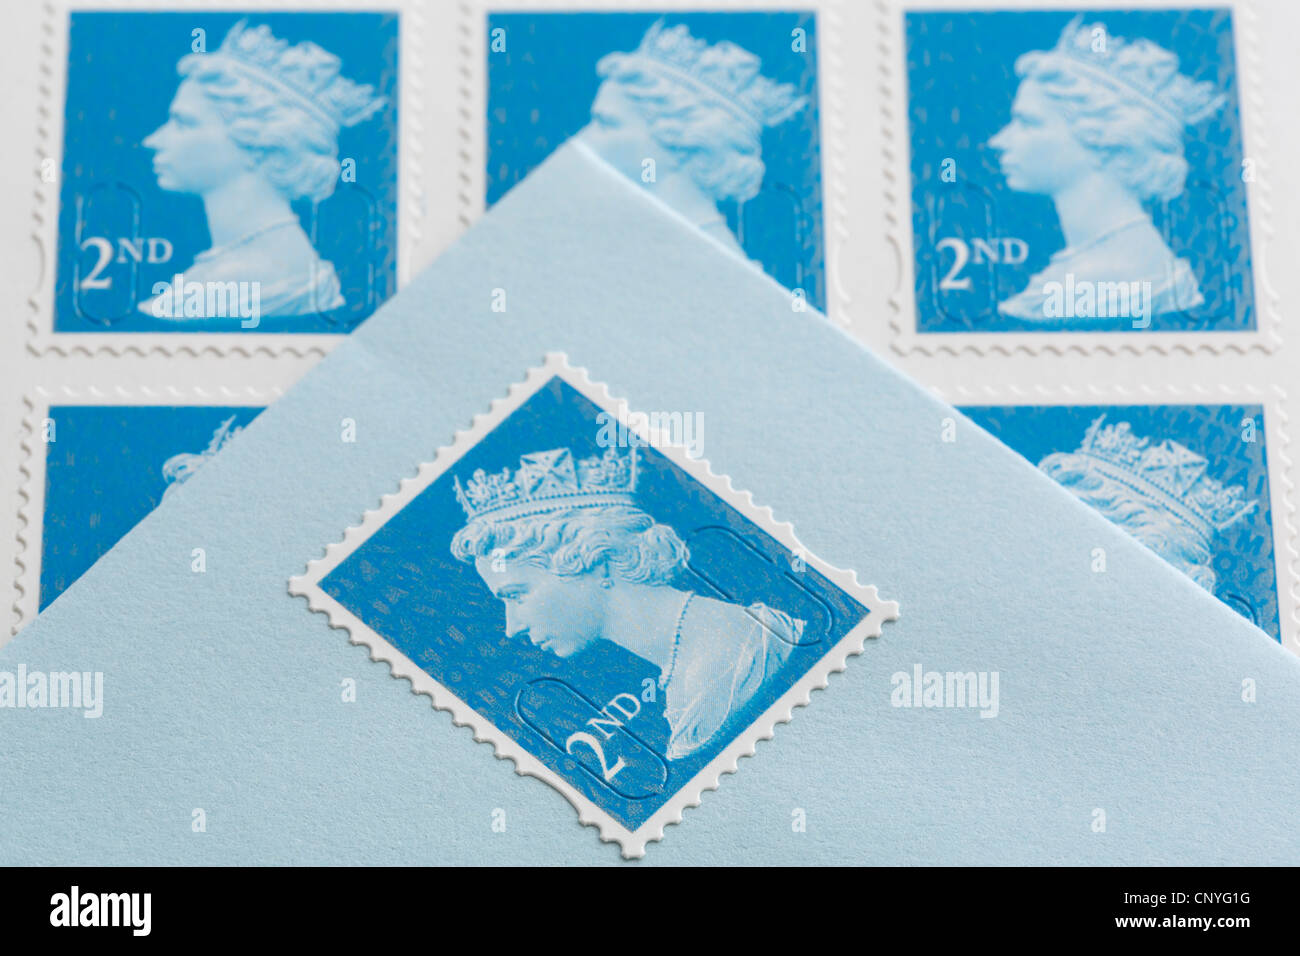 UK, Britain. Royal Mail second class postage stamps and an envelope with a stamp stuck on - Stock Image